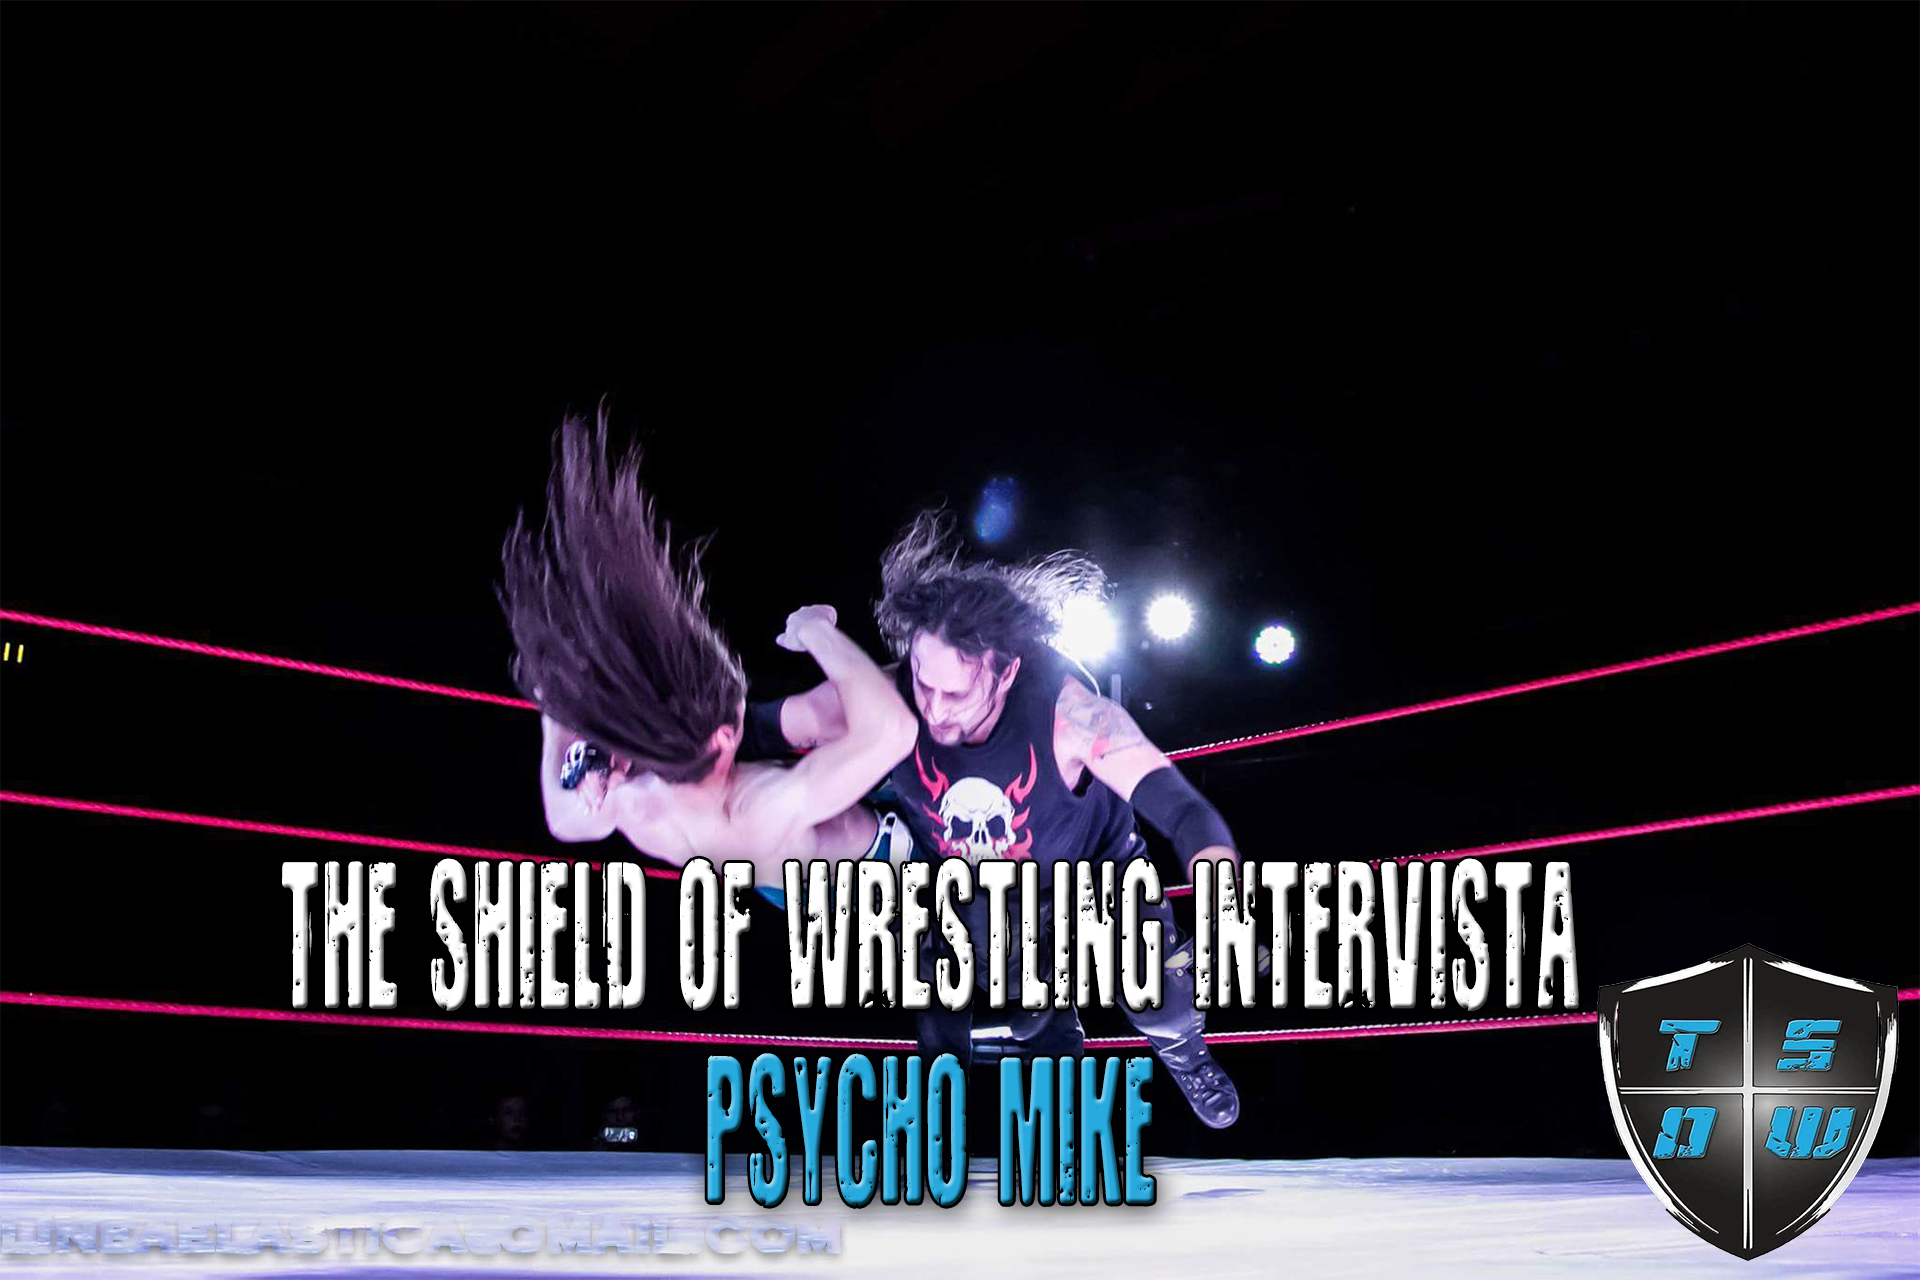 Intervista a Psycho Mike